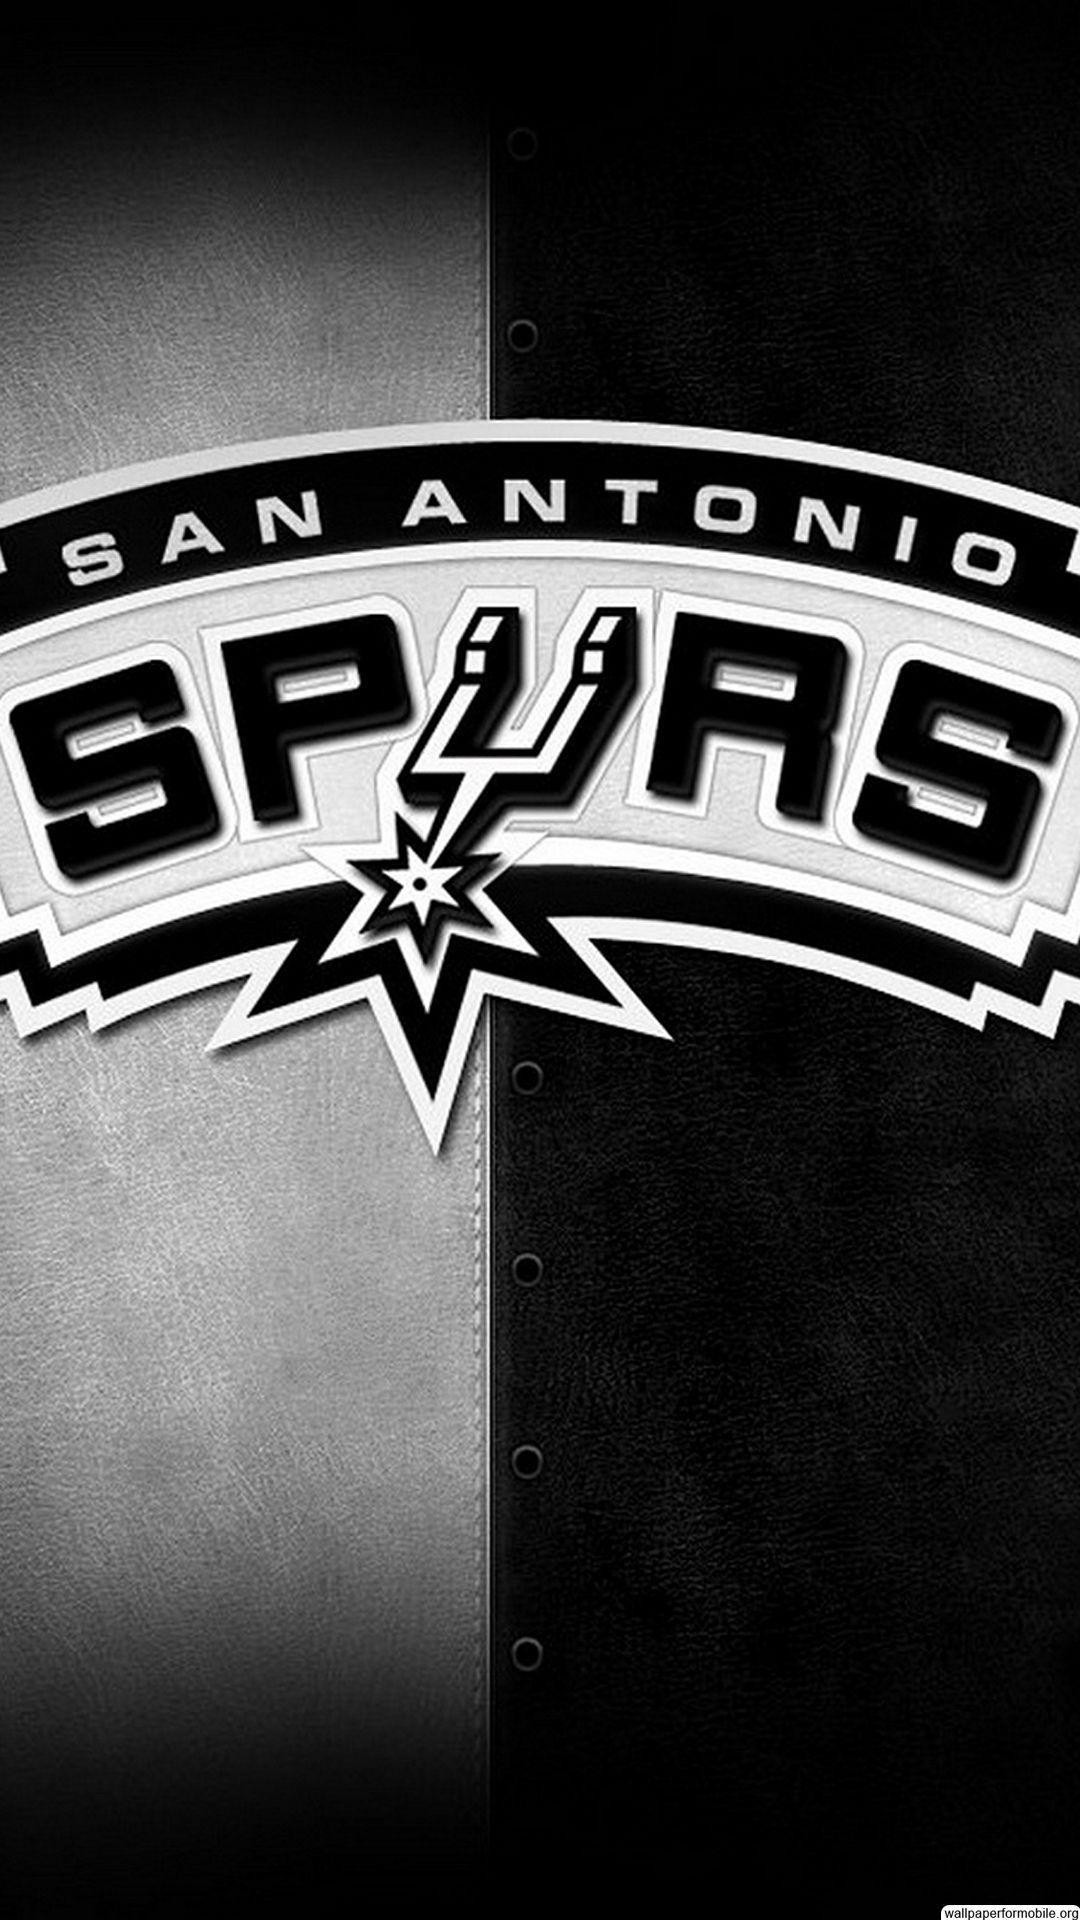 San Antonio Spurs Wallpapers 71 Background Pictures